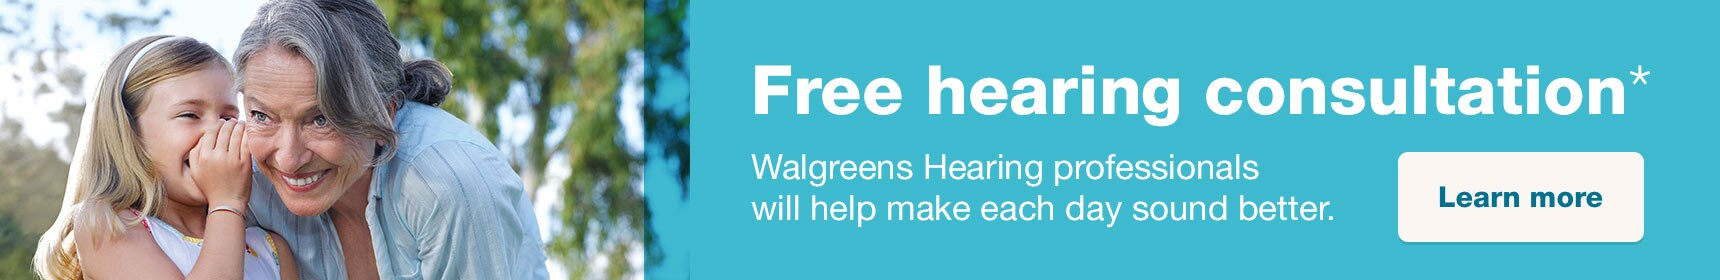 Free hearing consultation.* Walgreens hearing professionals will help make each day sound better. Learn more.